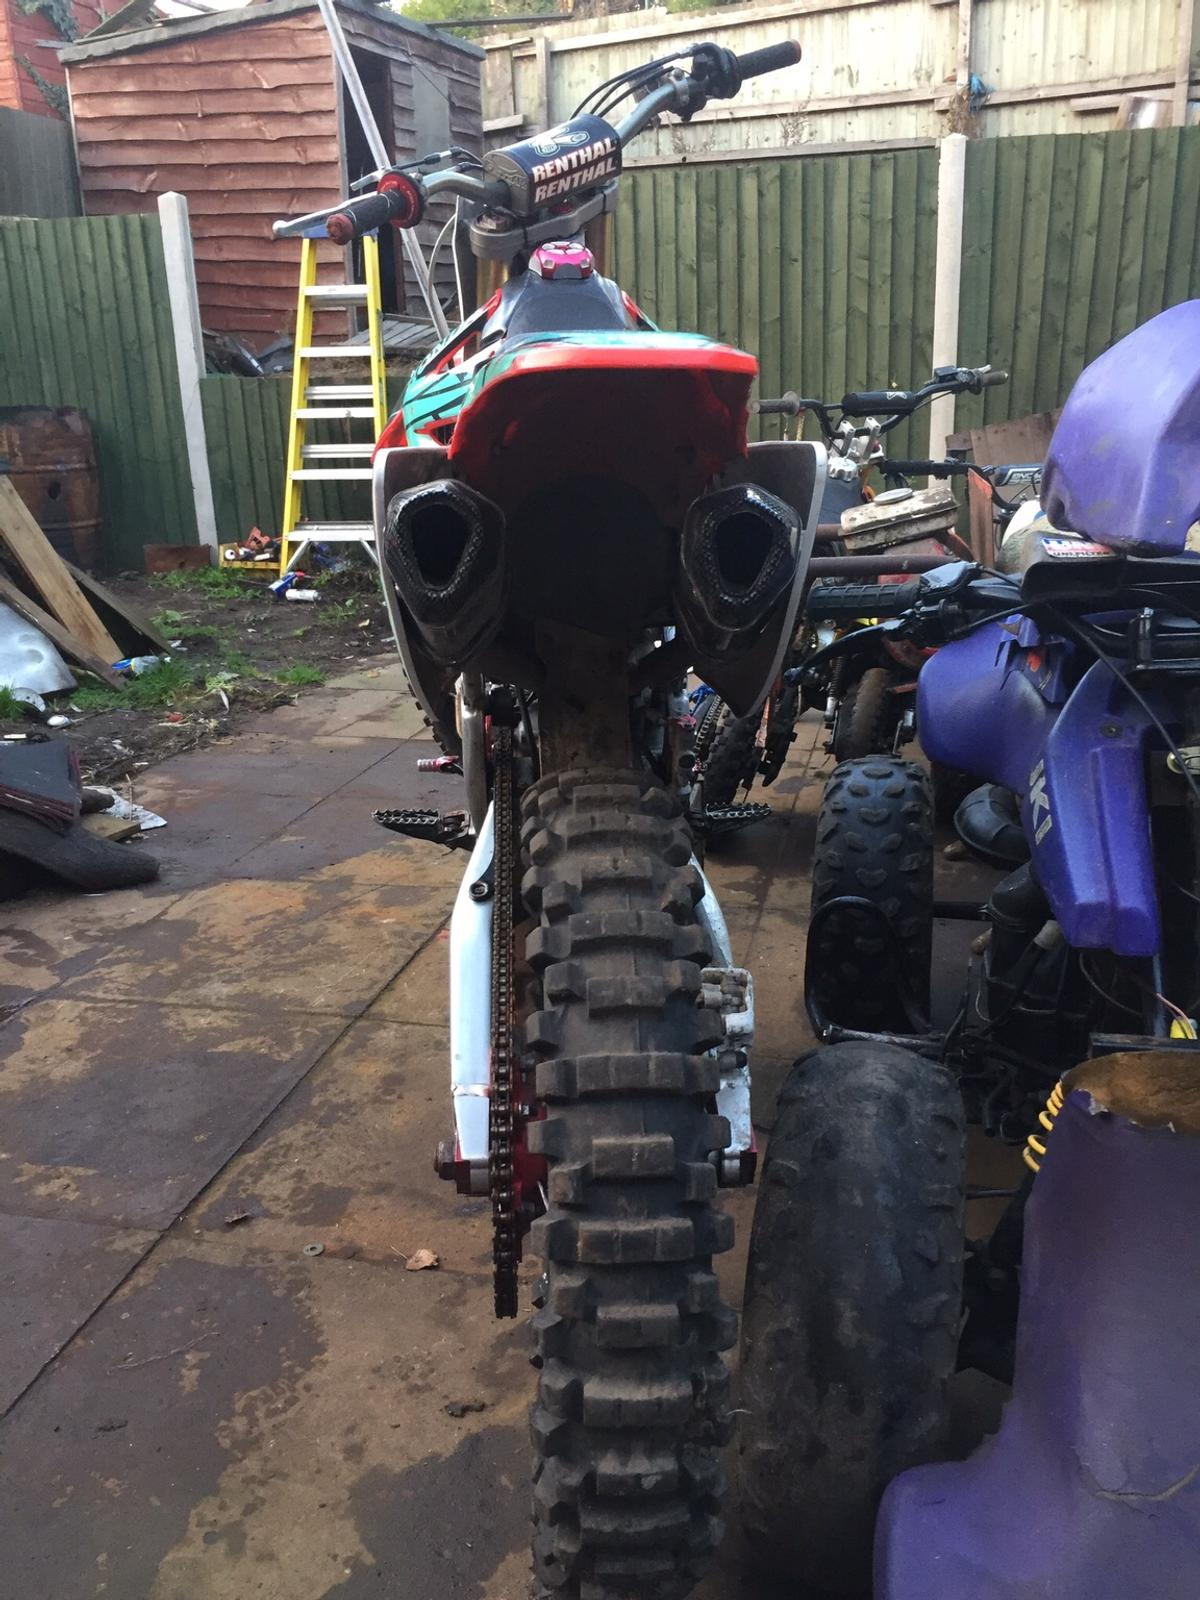 2007 crf250r in Walsall for £1,800 00 for sale - Shpock